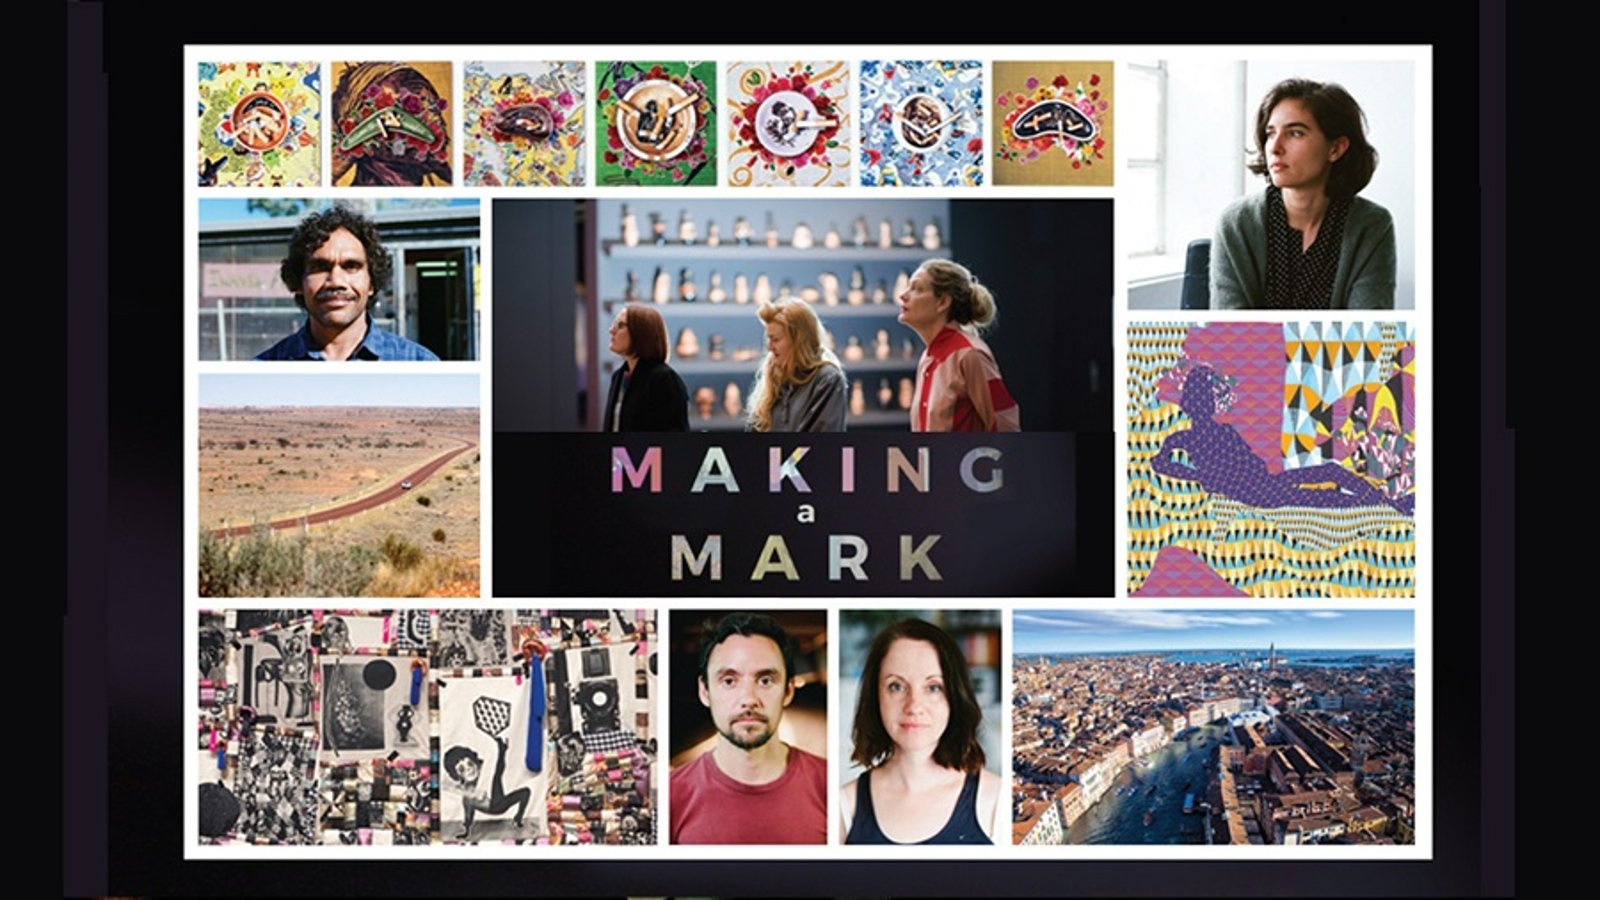 Making a Mark - Inspiration on the Cutting Edge of Visual Arts